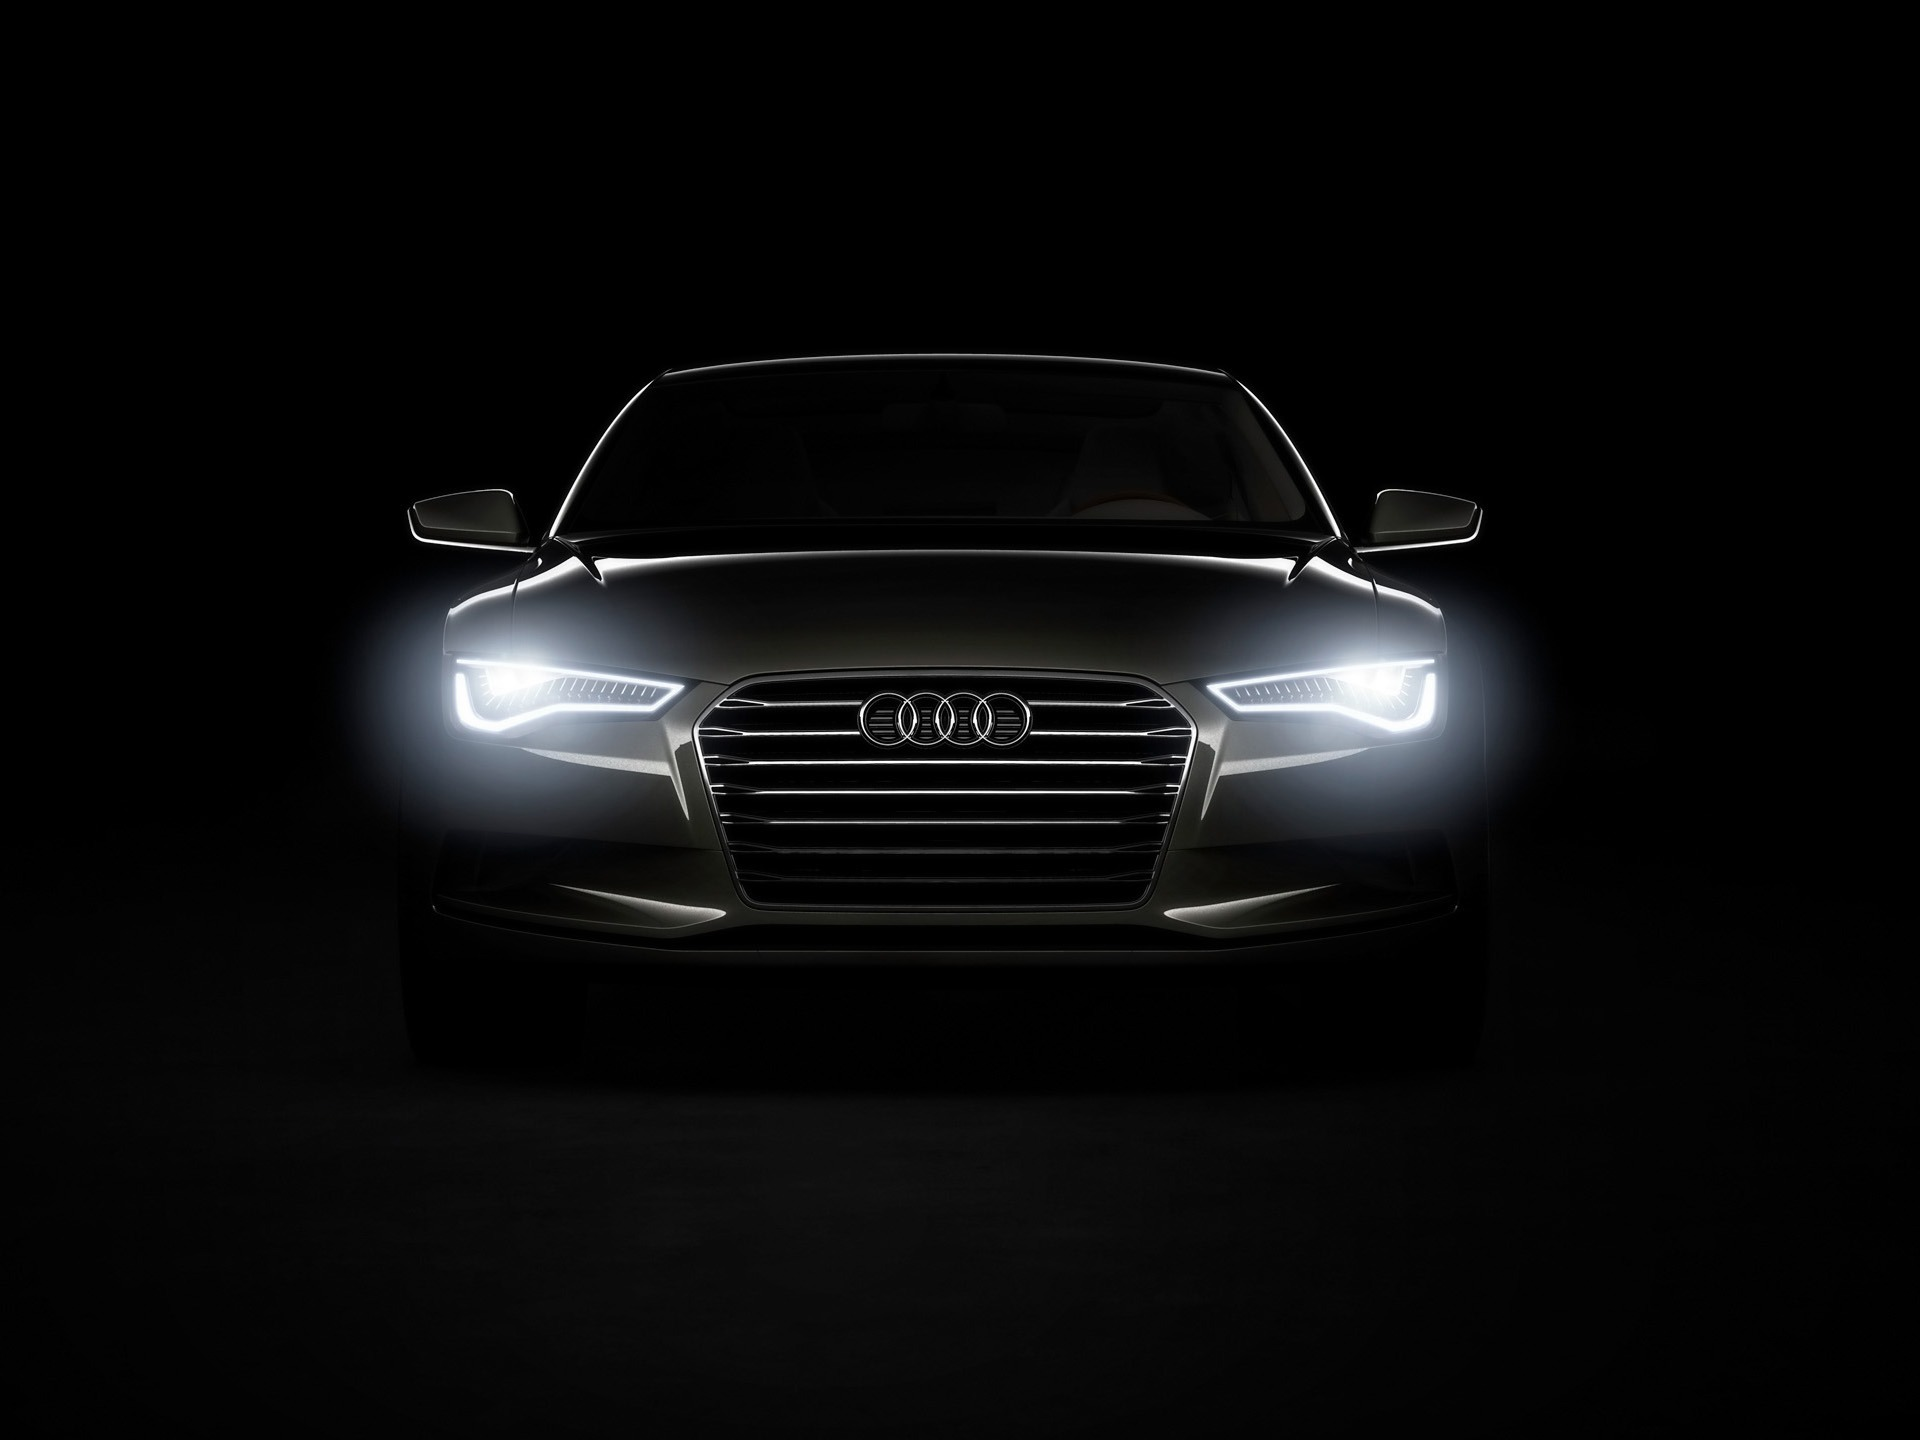 Audi A7 Concept Wallpaper Audi Cars Wallpapers In Jpg Format For